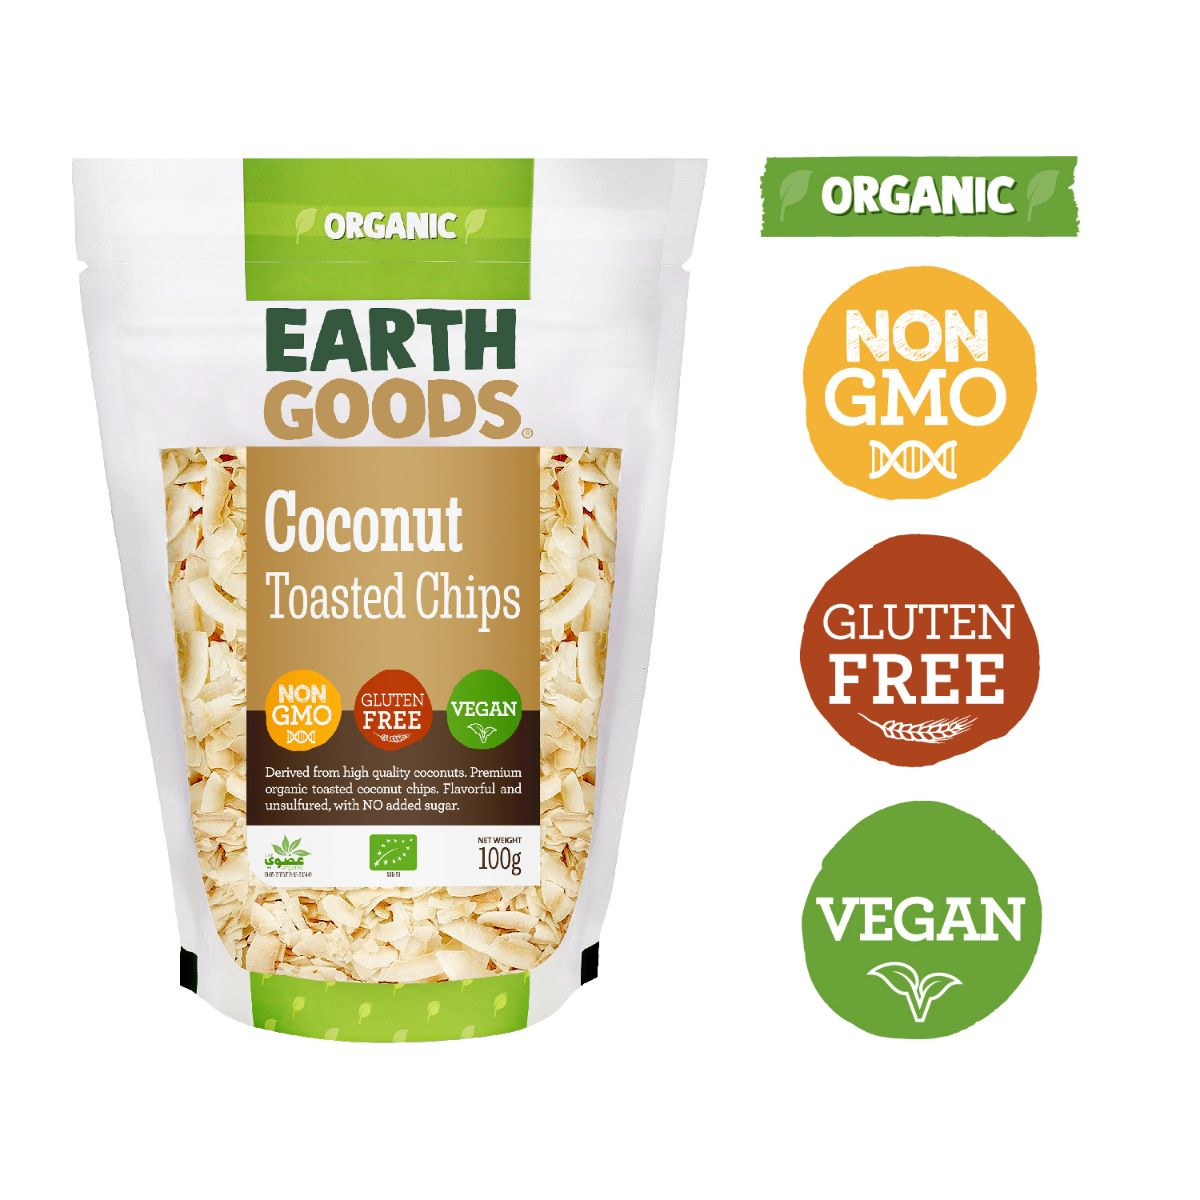 Earth Goods Organic Coconut Toasted Chips - 100g